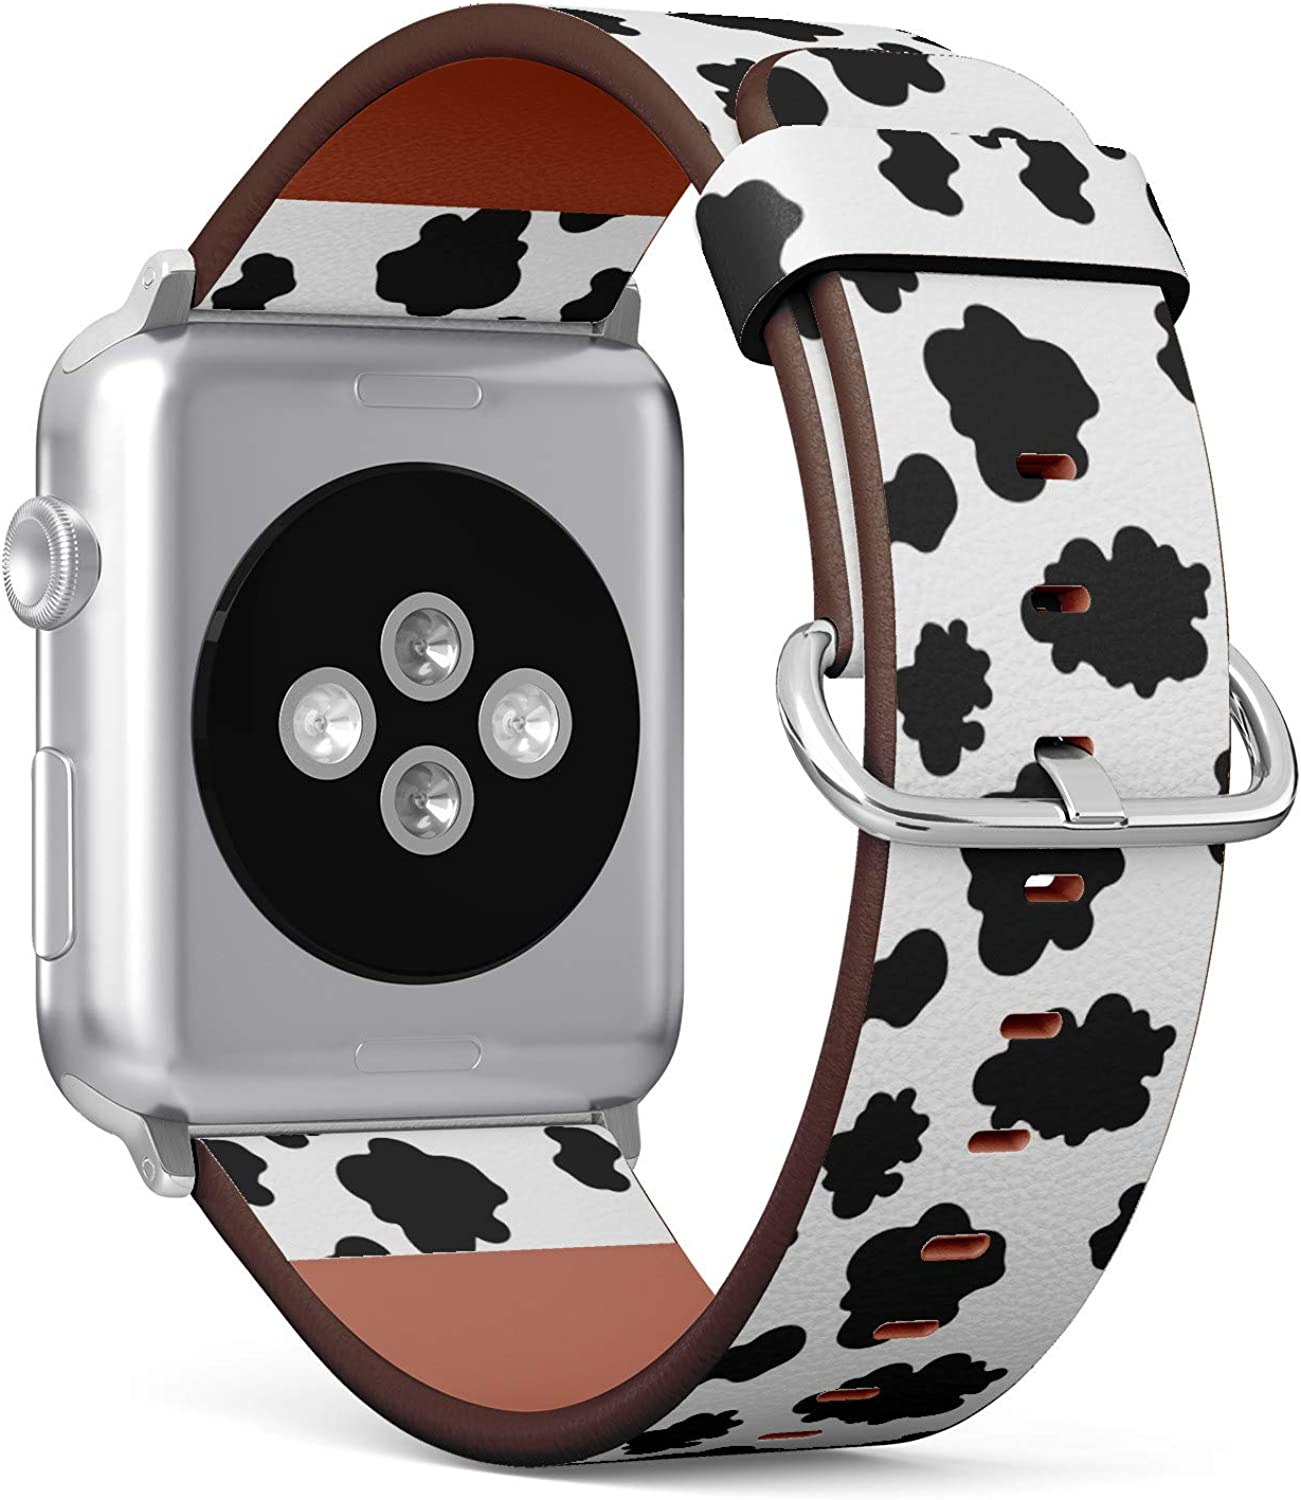 Lovely milk cow skin pattern - Patterned Leather Wristband Strap Compatible with Apple Watch Series 4/3/2/1 38mm/40mm